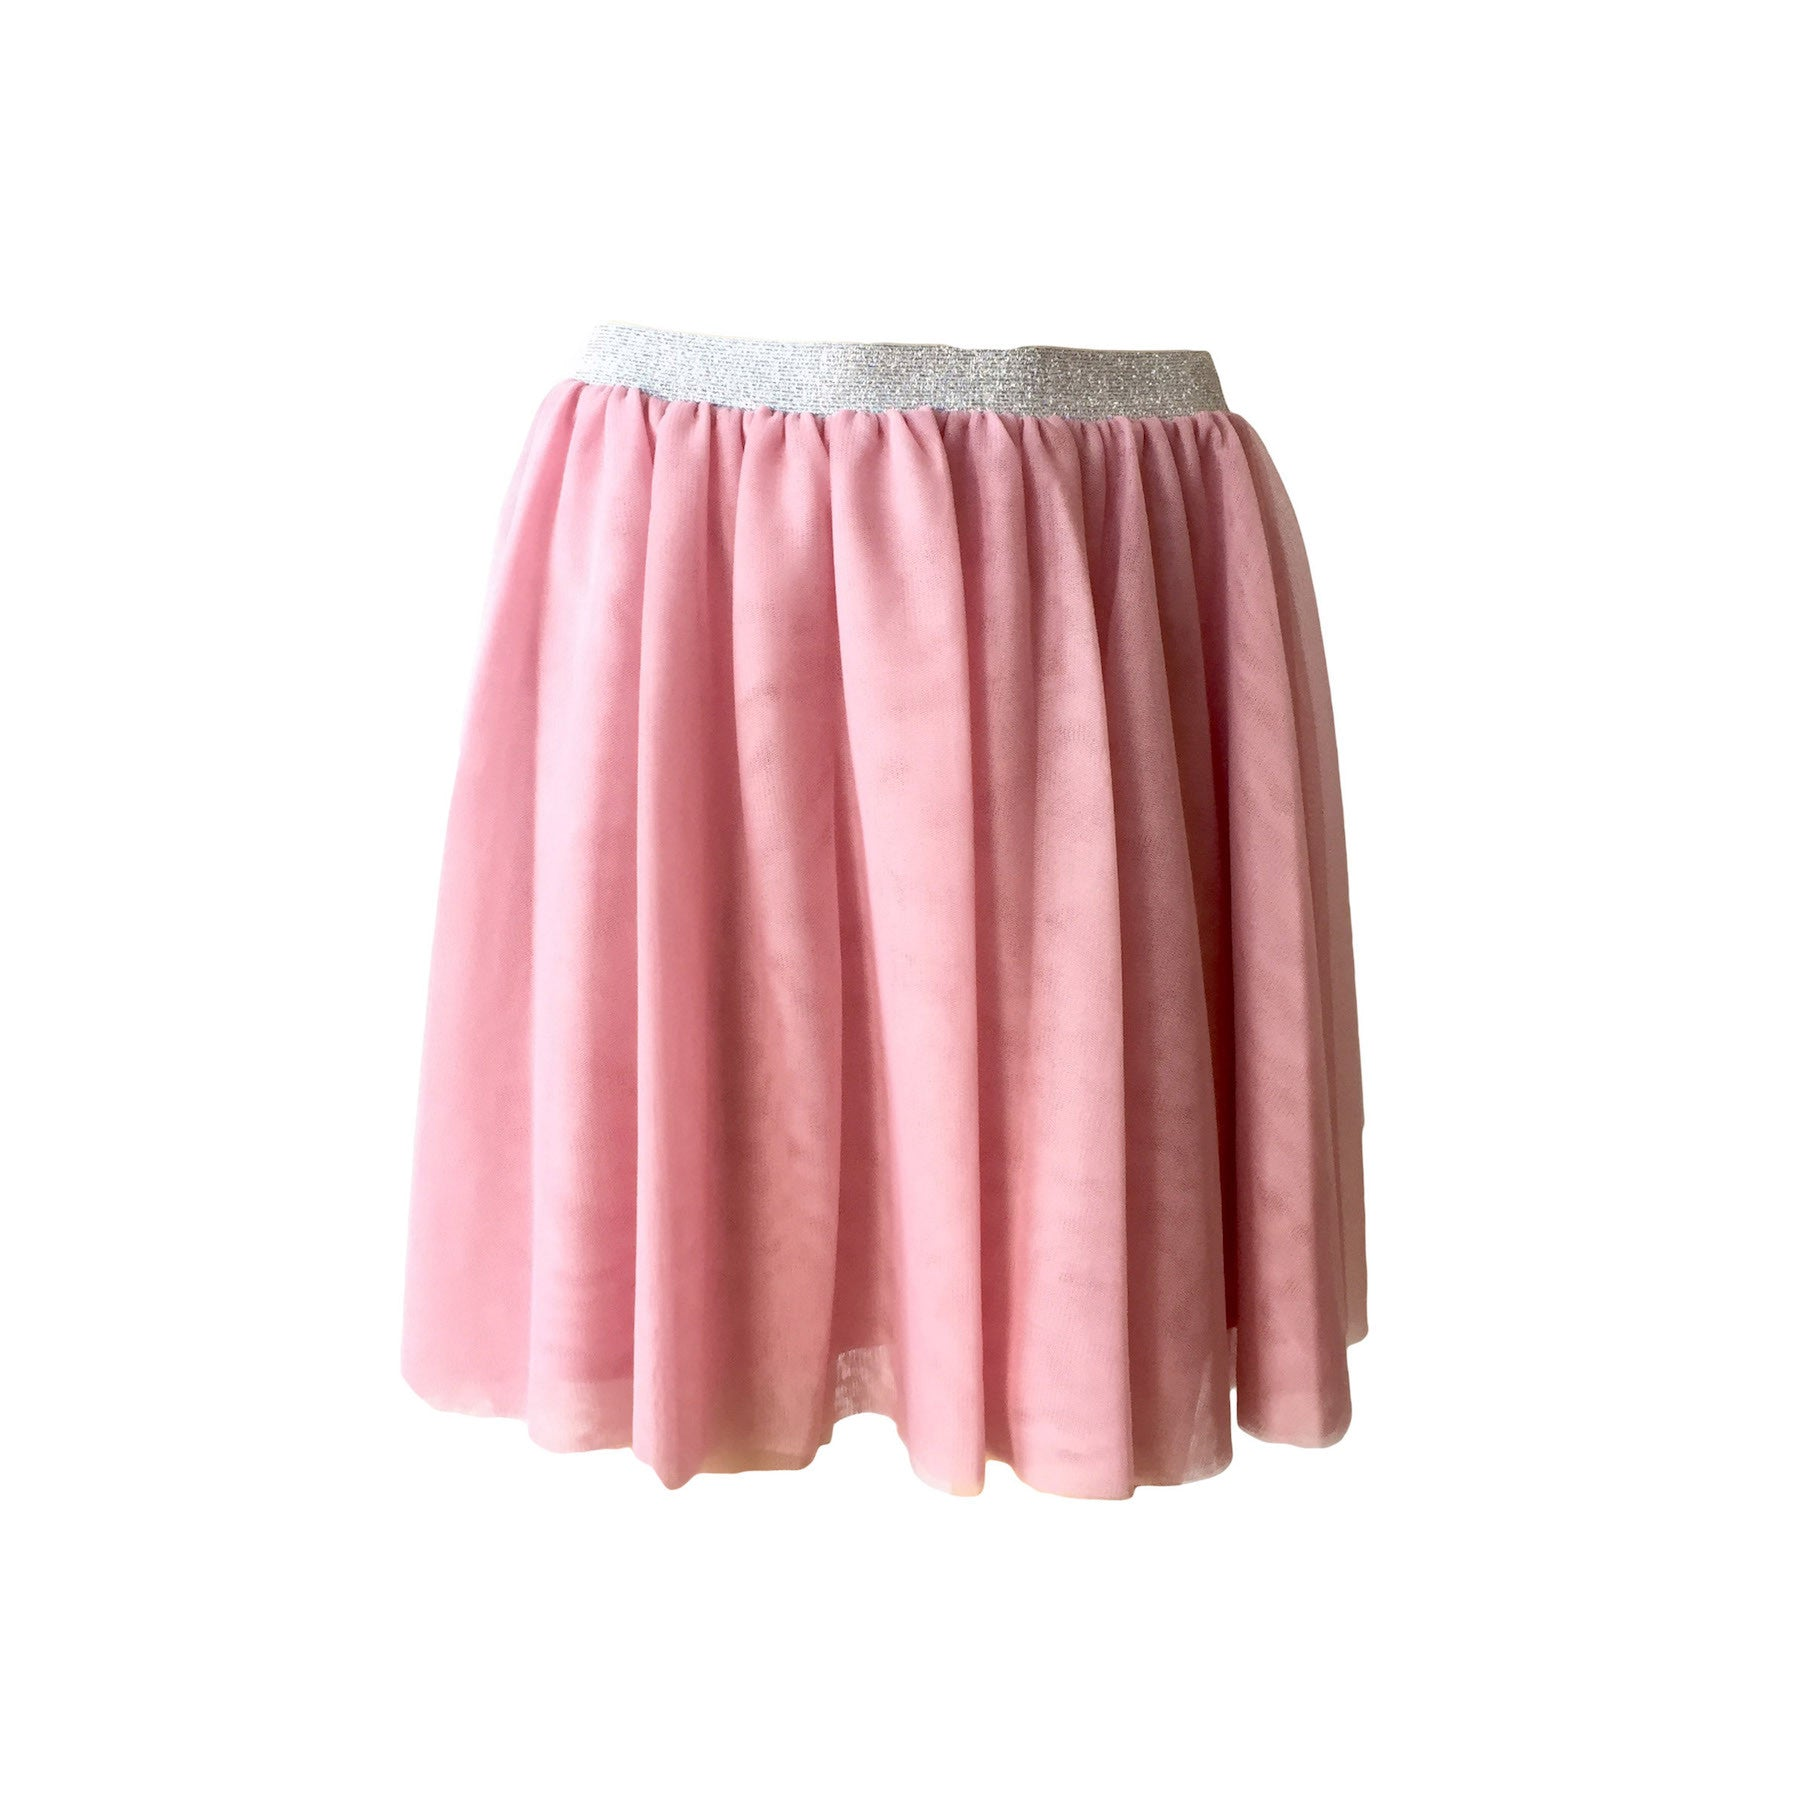 Tulle into summer with the gorgeous pink nectar tulle skirt by Belgium brand SevenOneSeven.  This skirt can be worn far from preppy.  Make it edgy with a skull tee and a pair of converse.